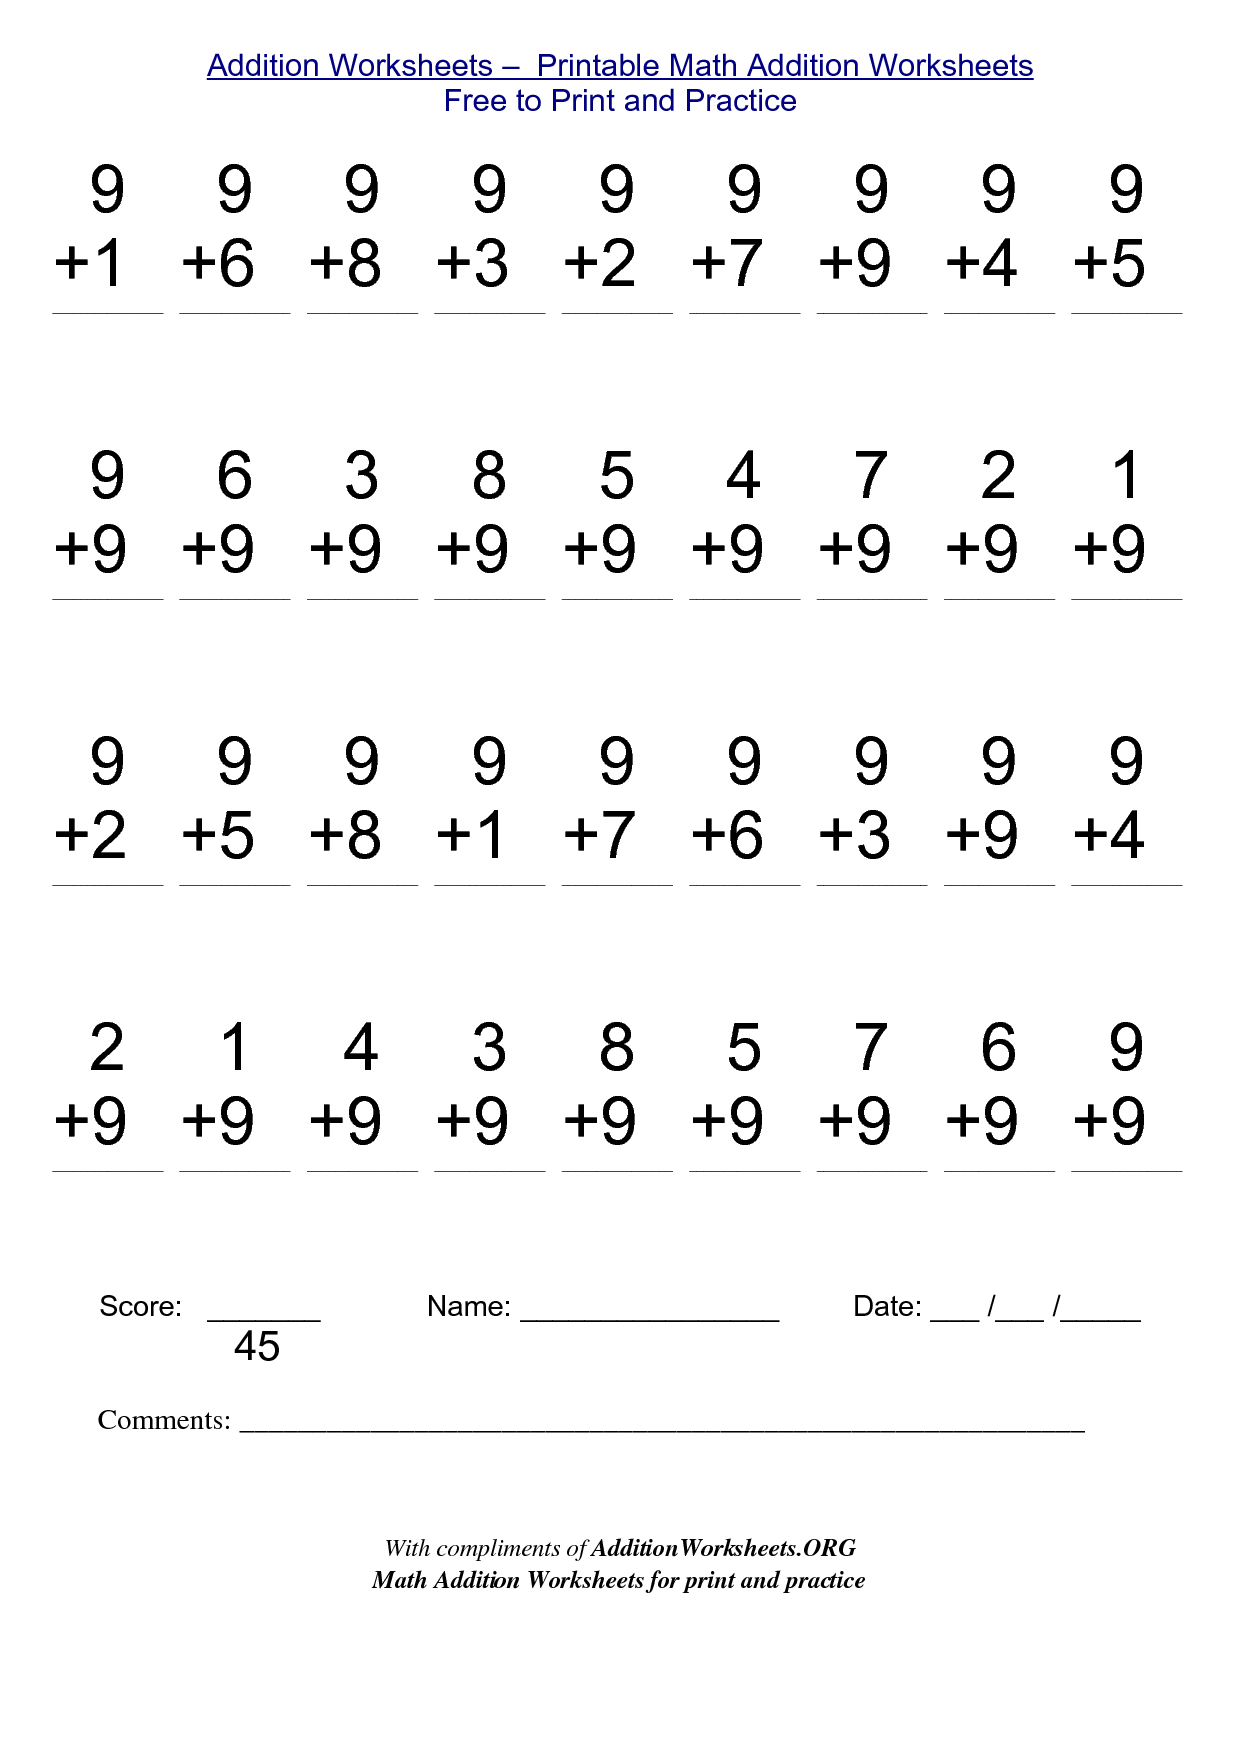 Worksheets Free Math Facts Worksheets free worksheet 100 addition facts 1 20 for educators pinterest math worksheets to print alot com